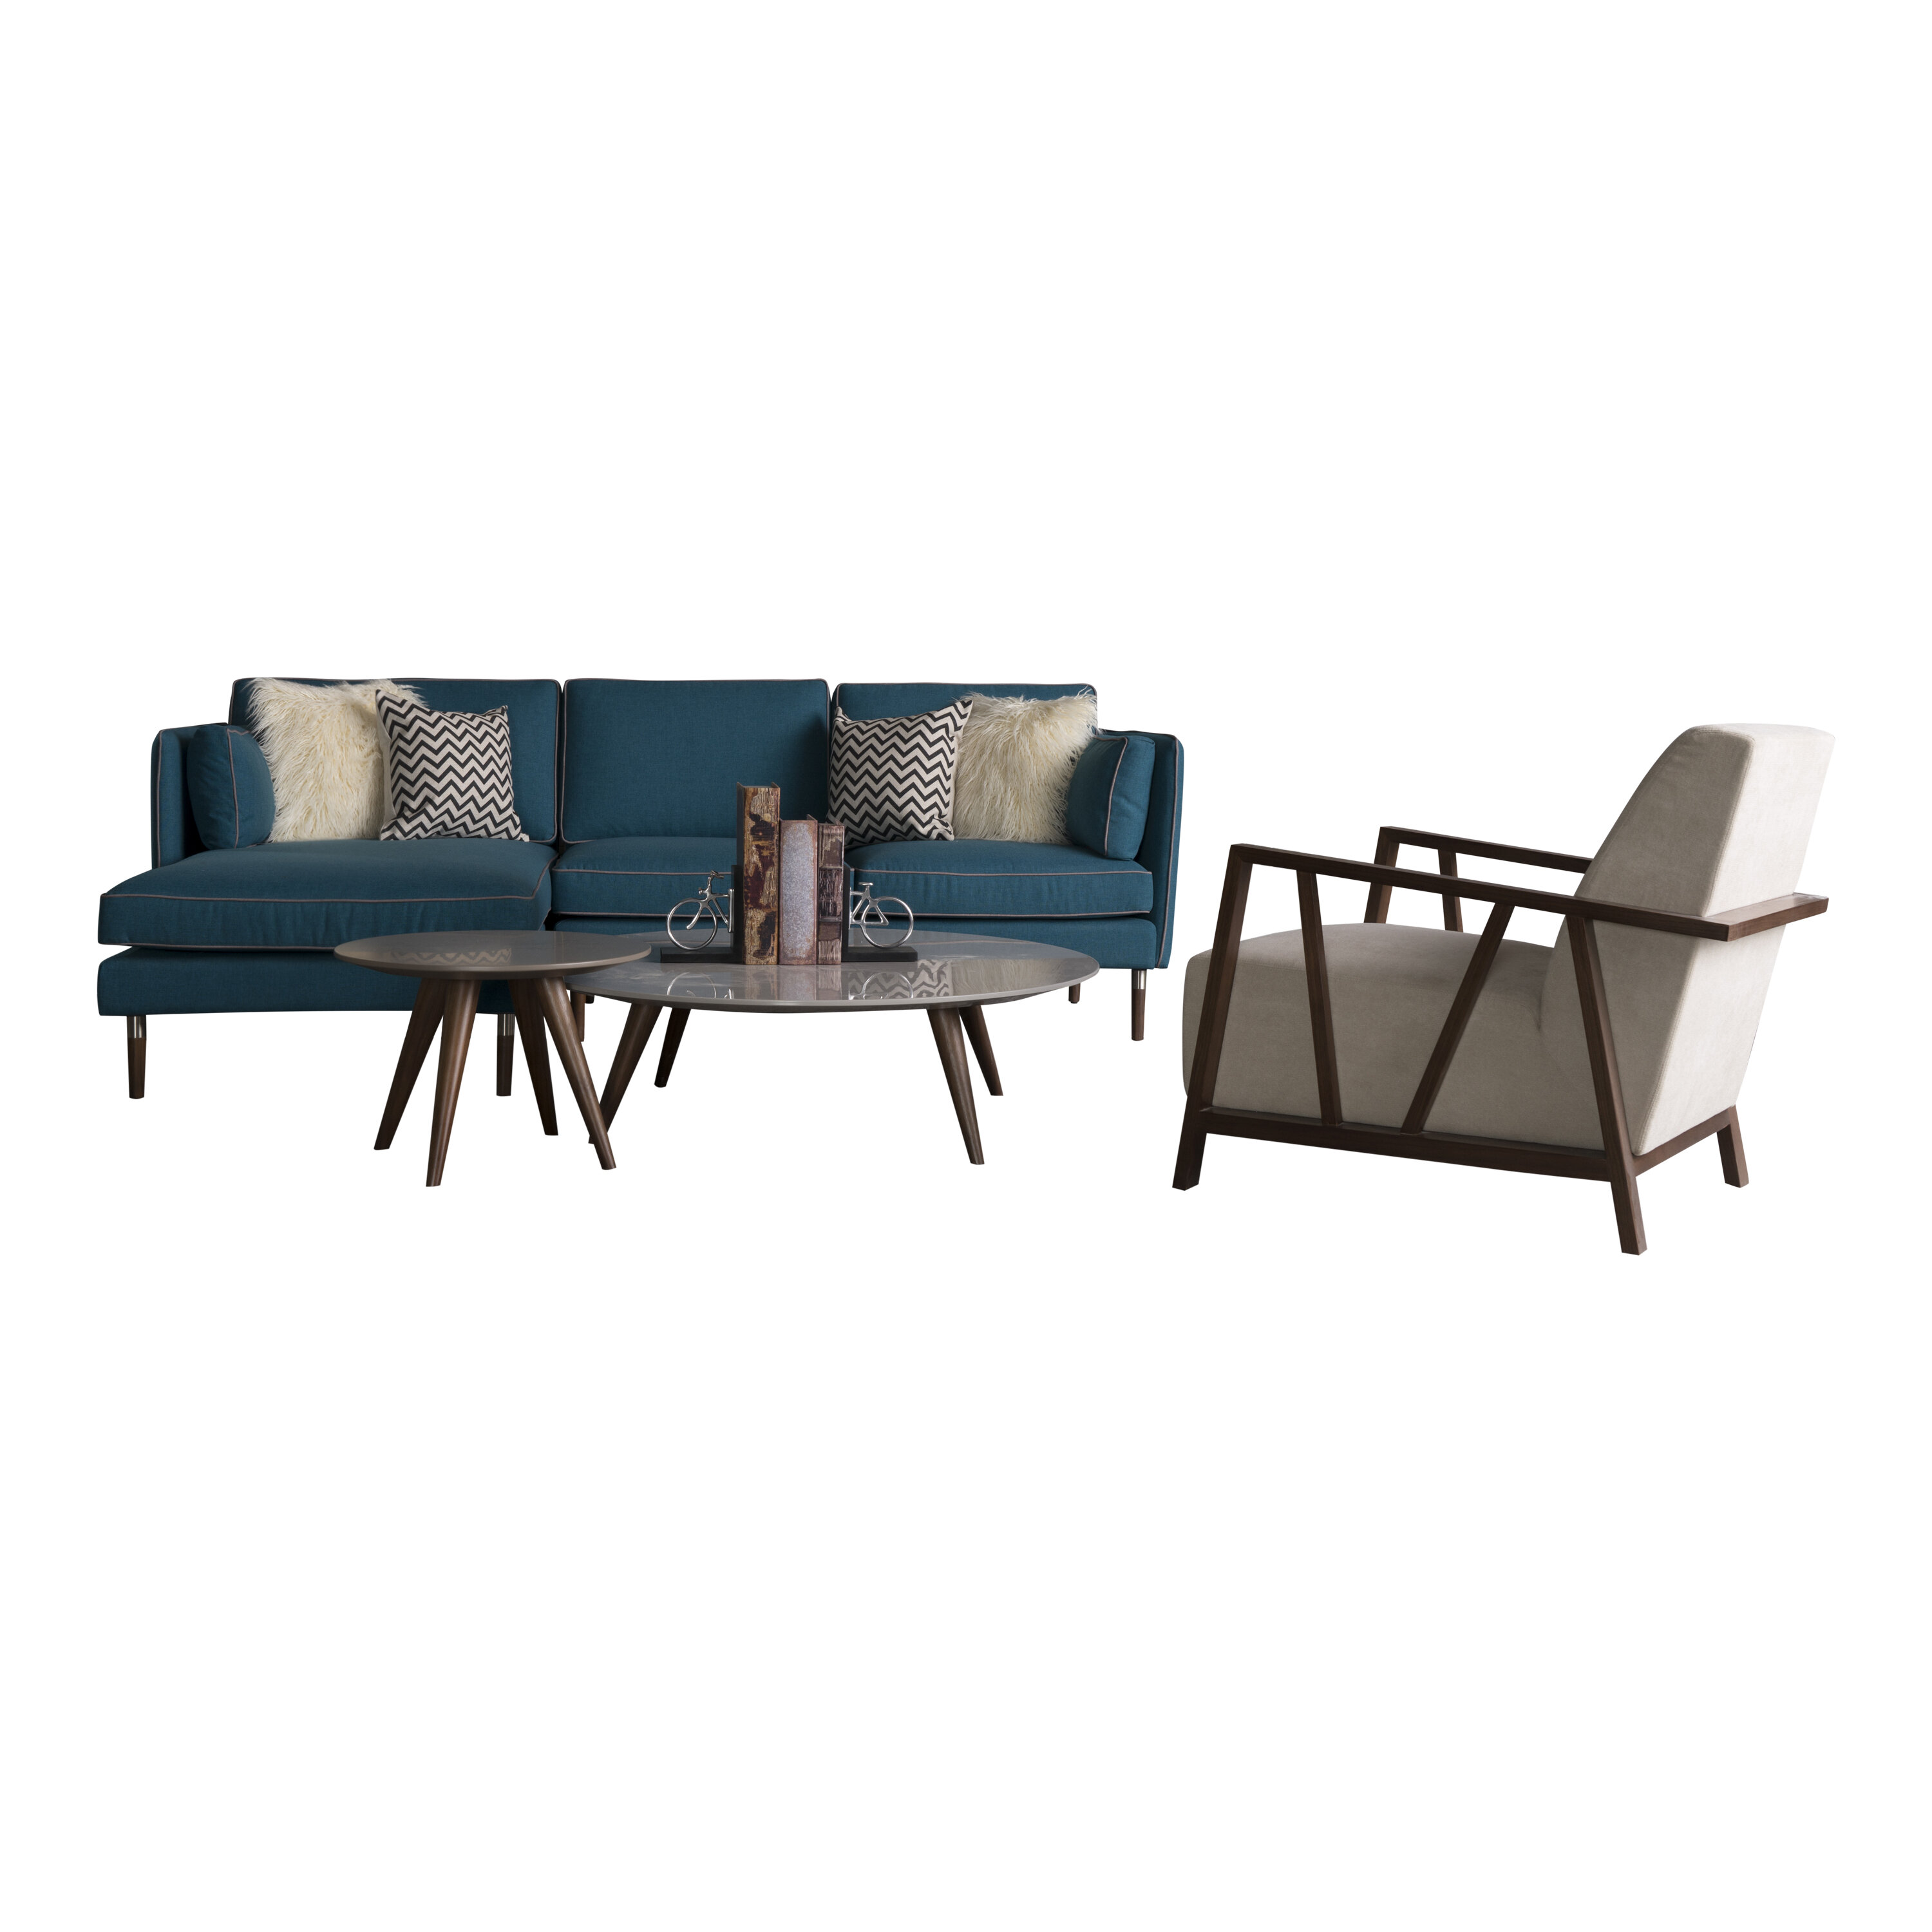 Corrigan Studio Shelburne 4 Piece Living Room Set | Wayfair